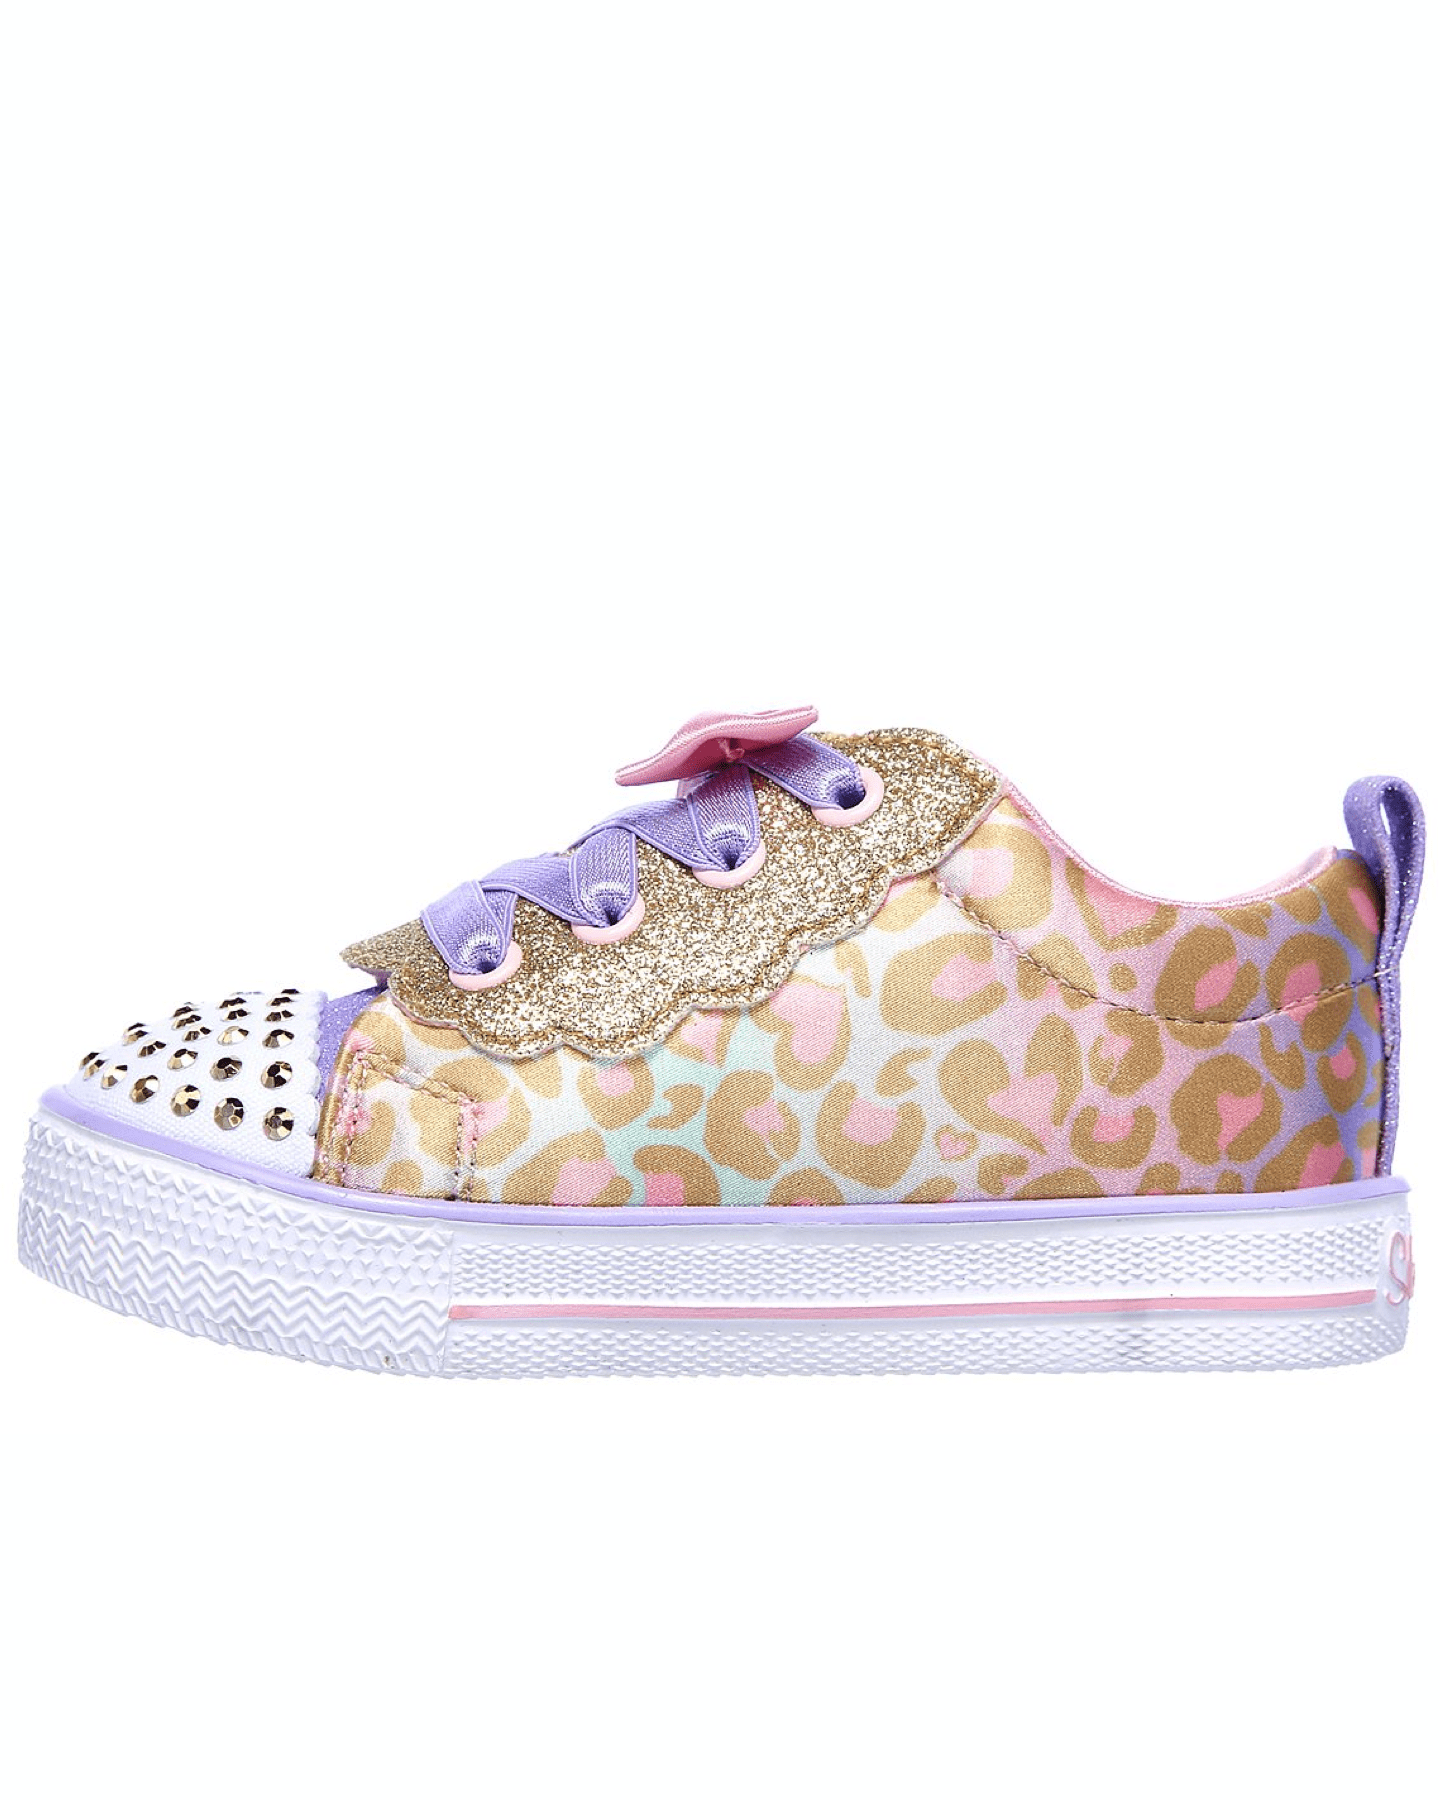 Sketchers-sweet-spot-twinkle-toes-light-pink